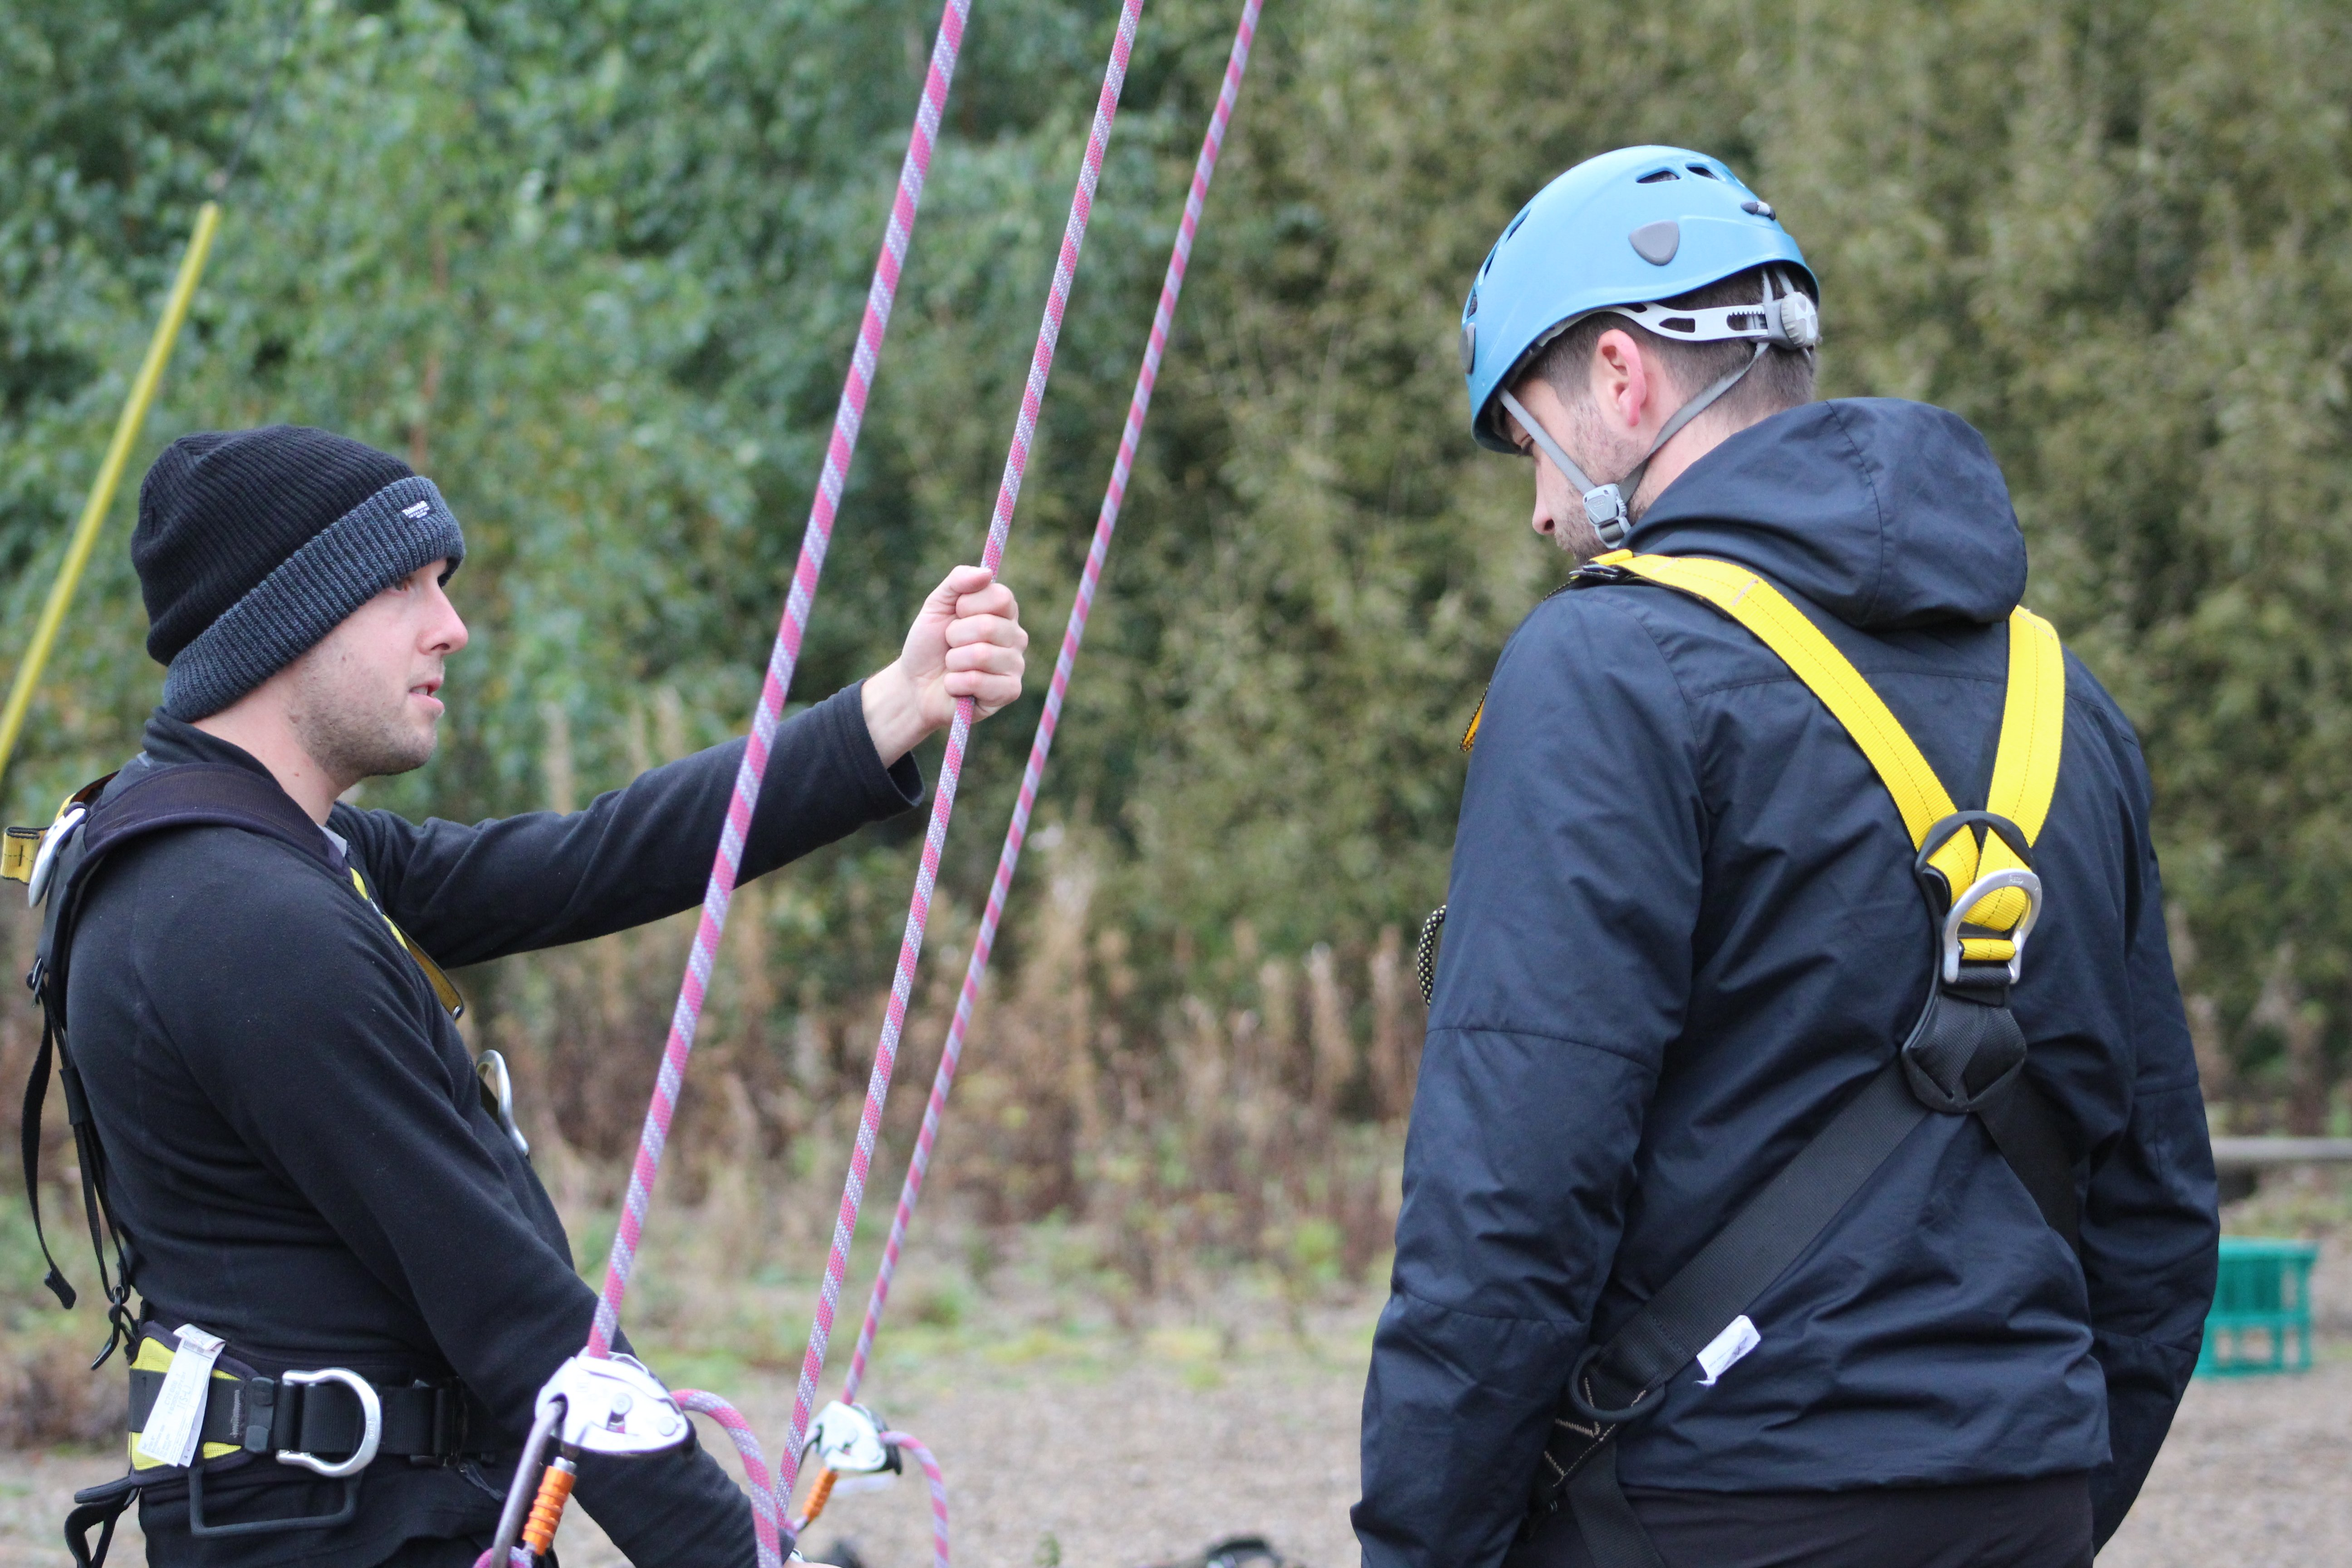 Instruction for High Ropes